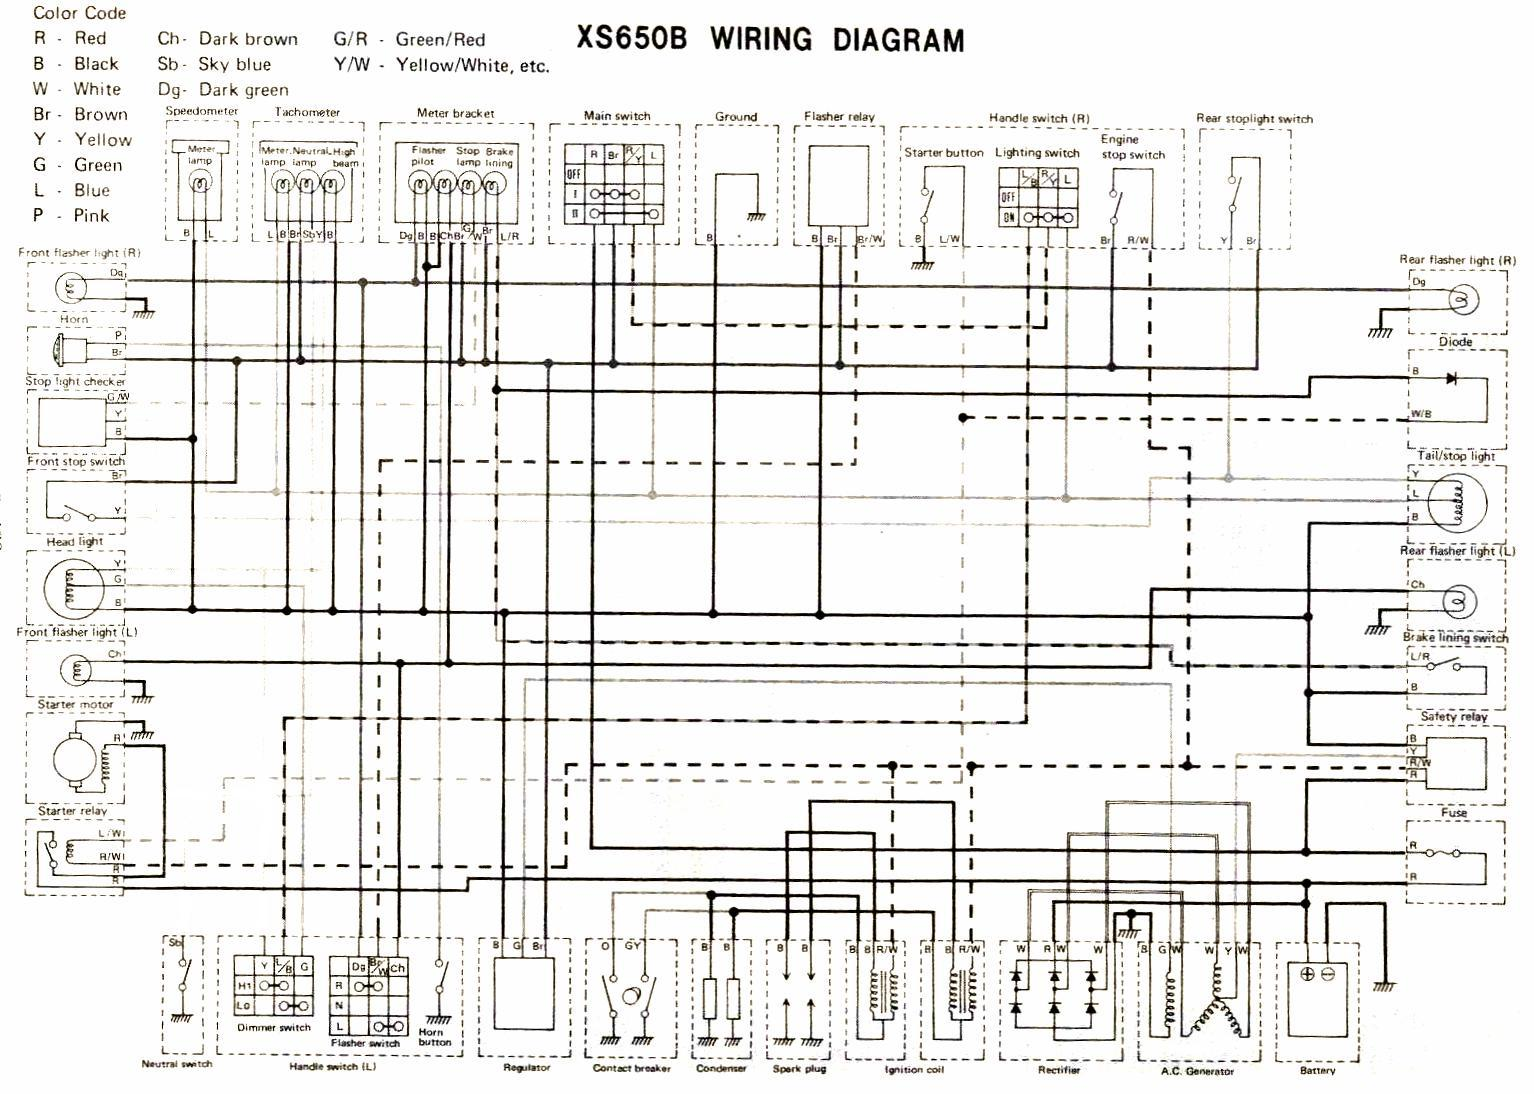 Wiring Diagrams 2001 Dyna Colored Lighting Diagram 1975 Xs650b